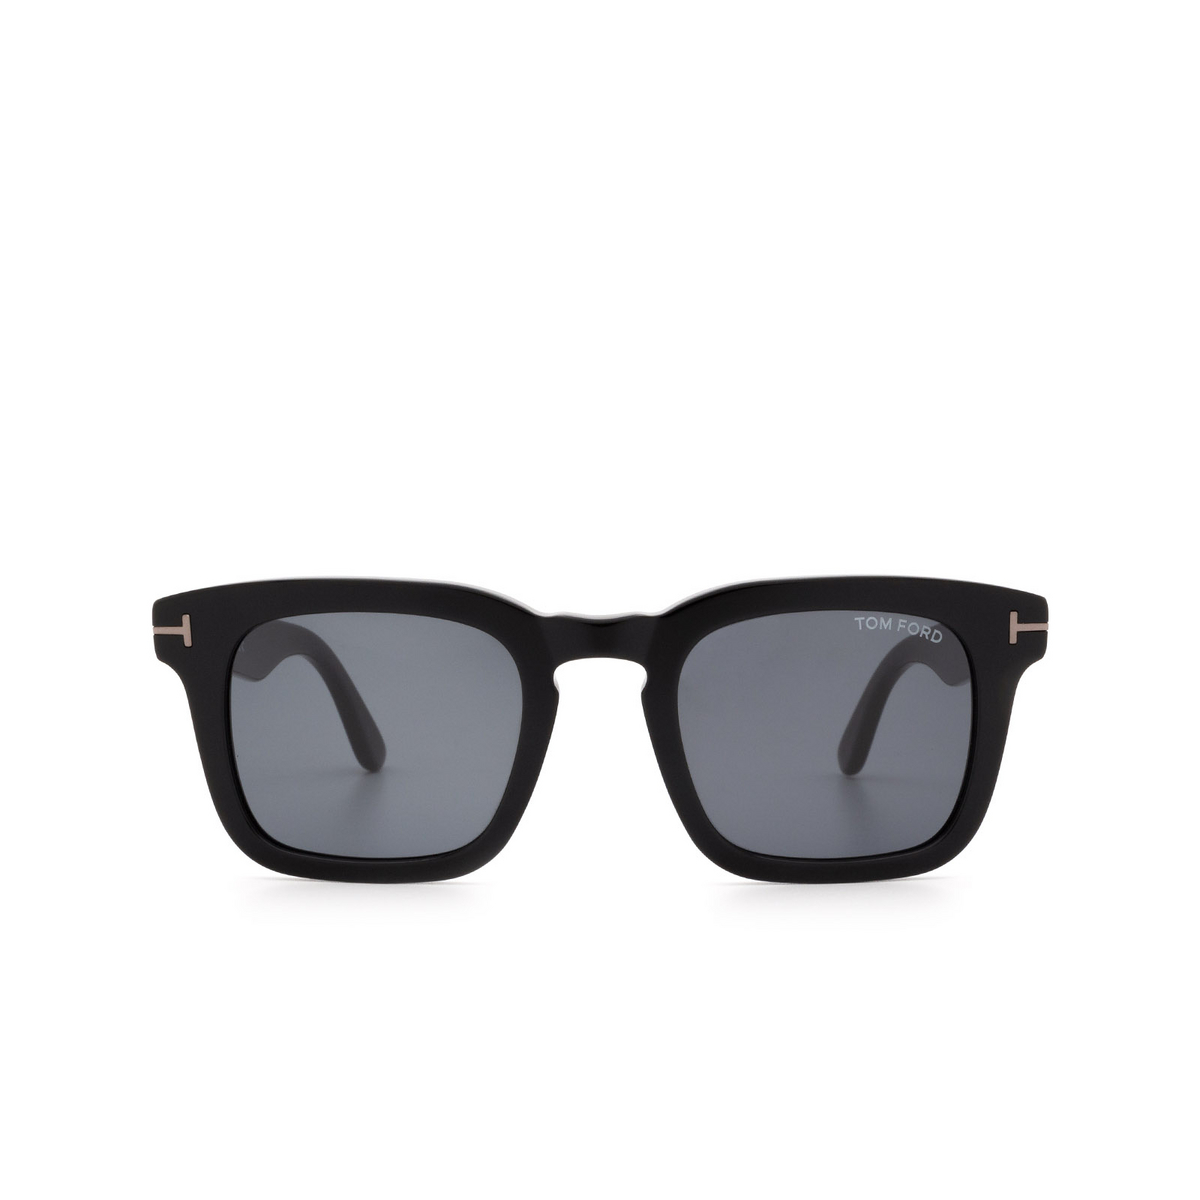 Tom Ford® Square Sunglasses: Dax FT0751-N color Shiny Black 01A - front view.